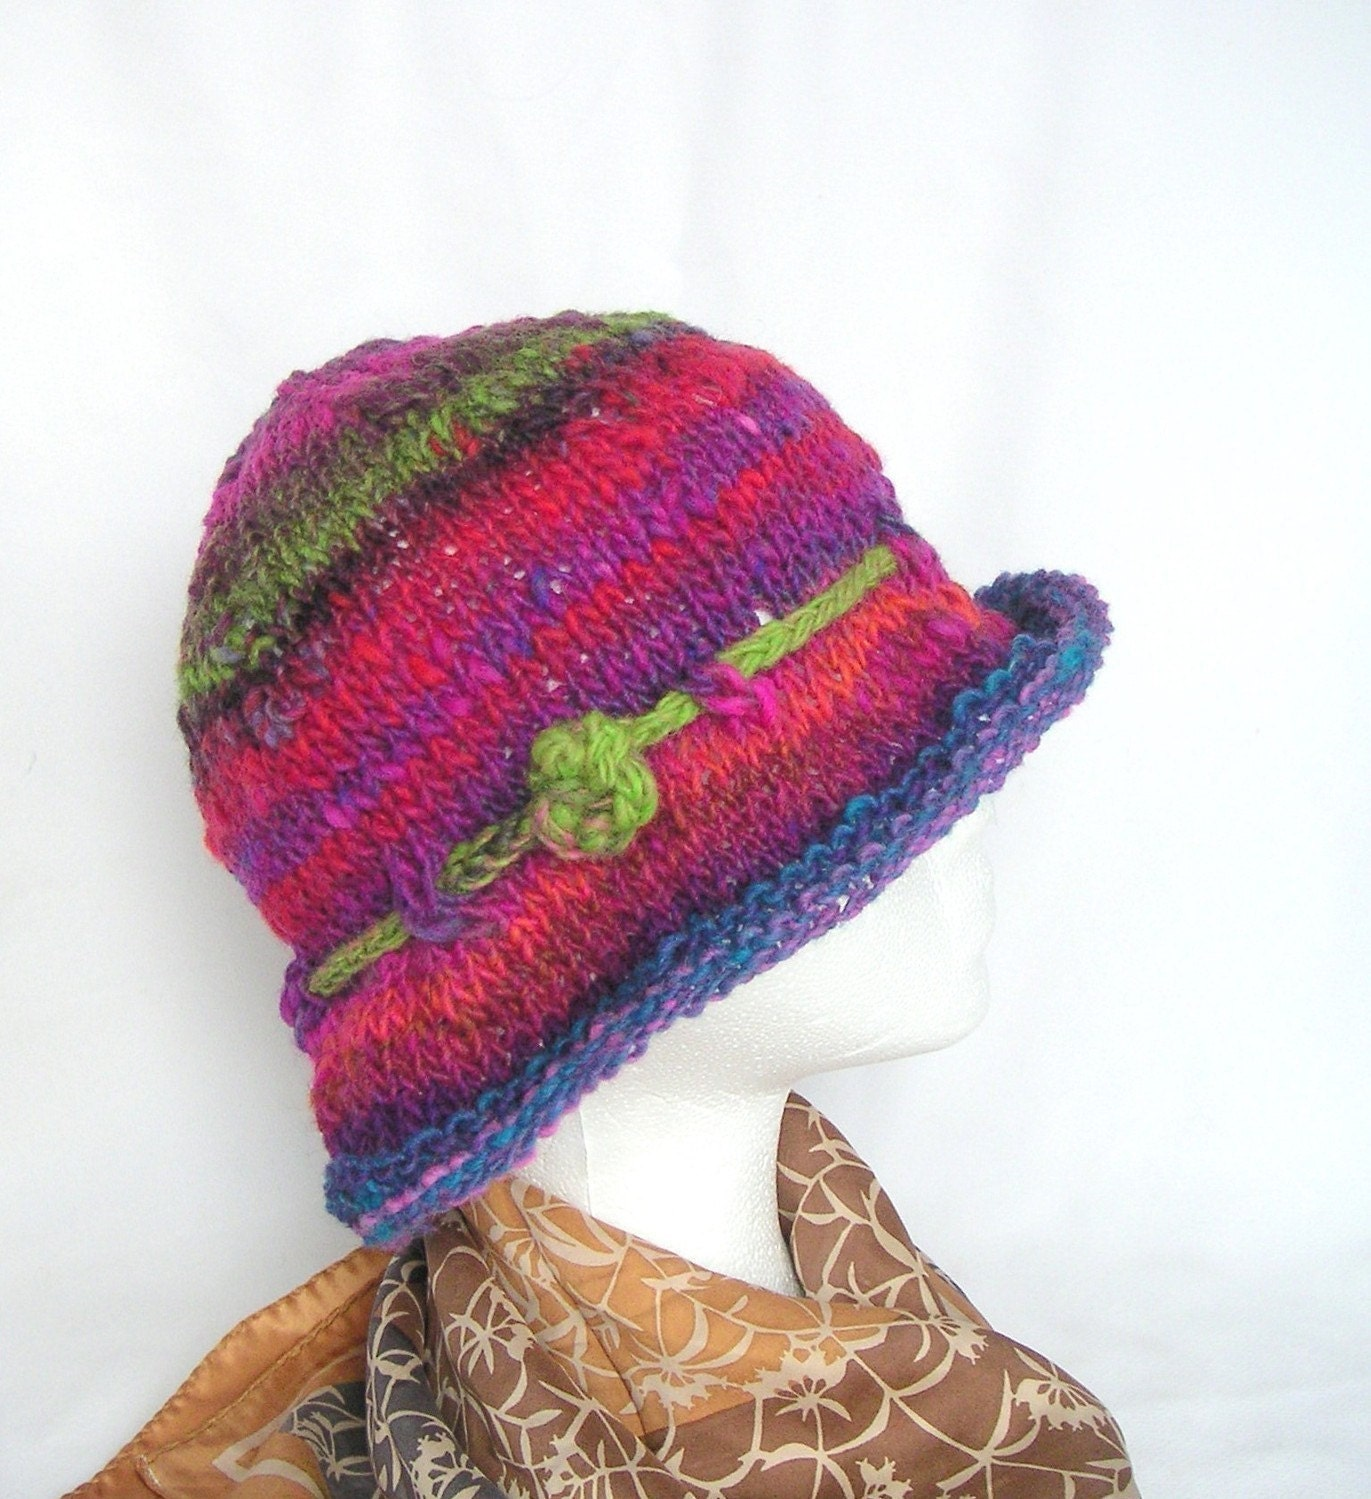 Hat Pattern Knit : EASY KNITTING PATTERNS FOR HATS   Free Patterns